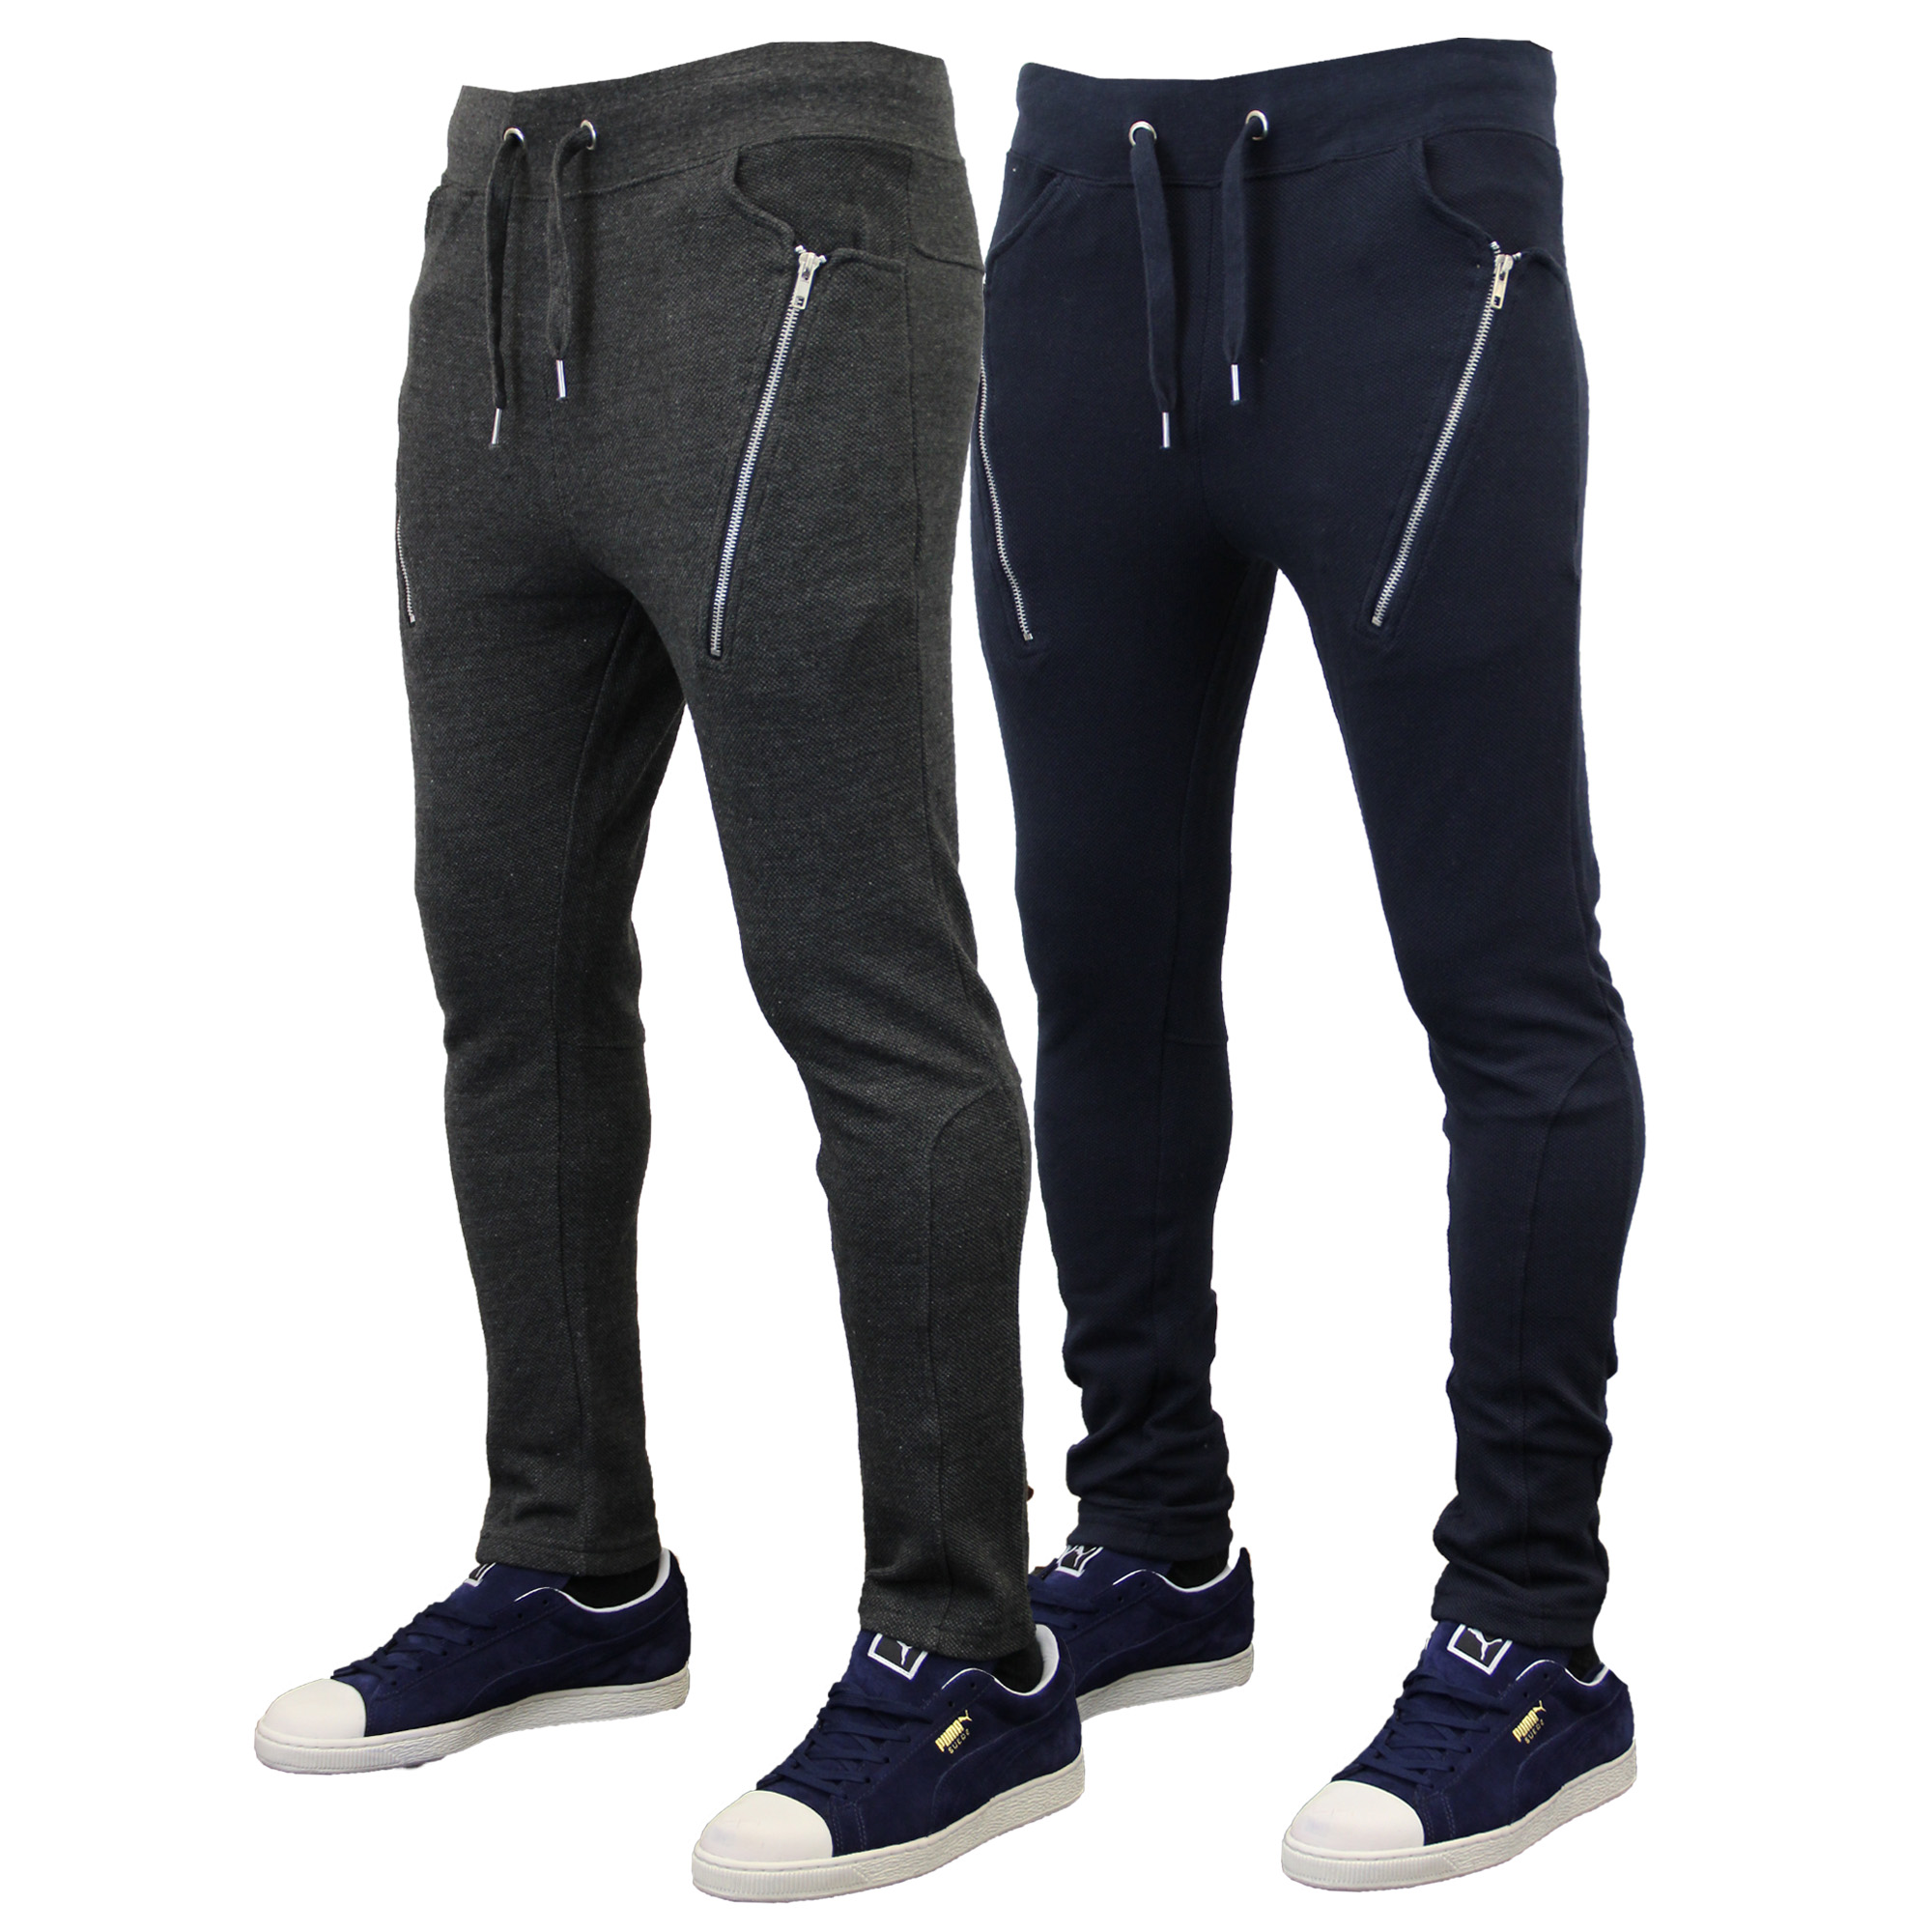 Reach Your Training Goals with Workout Clothes for Men. From jackets and outerwear to tees, tops, running pants, workout shorts and even underwear, you'll find men's workout clothes that are engineered to manage moisture and temperature, while providing breathability and a full range of motion.